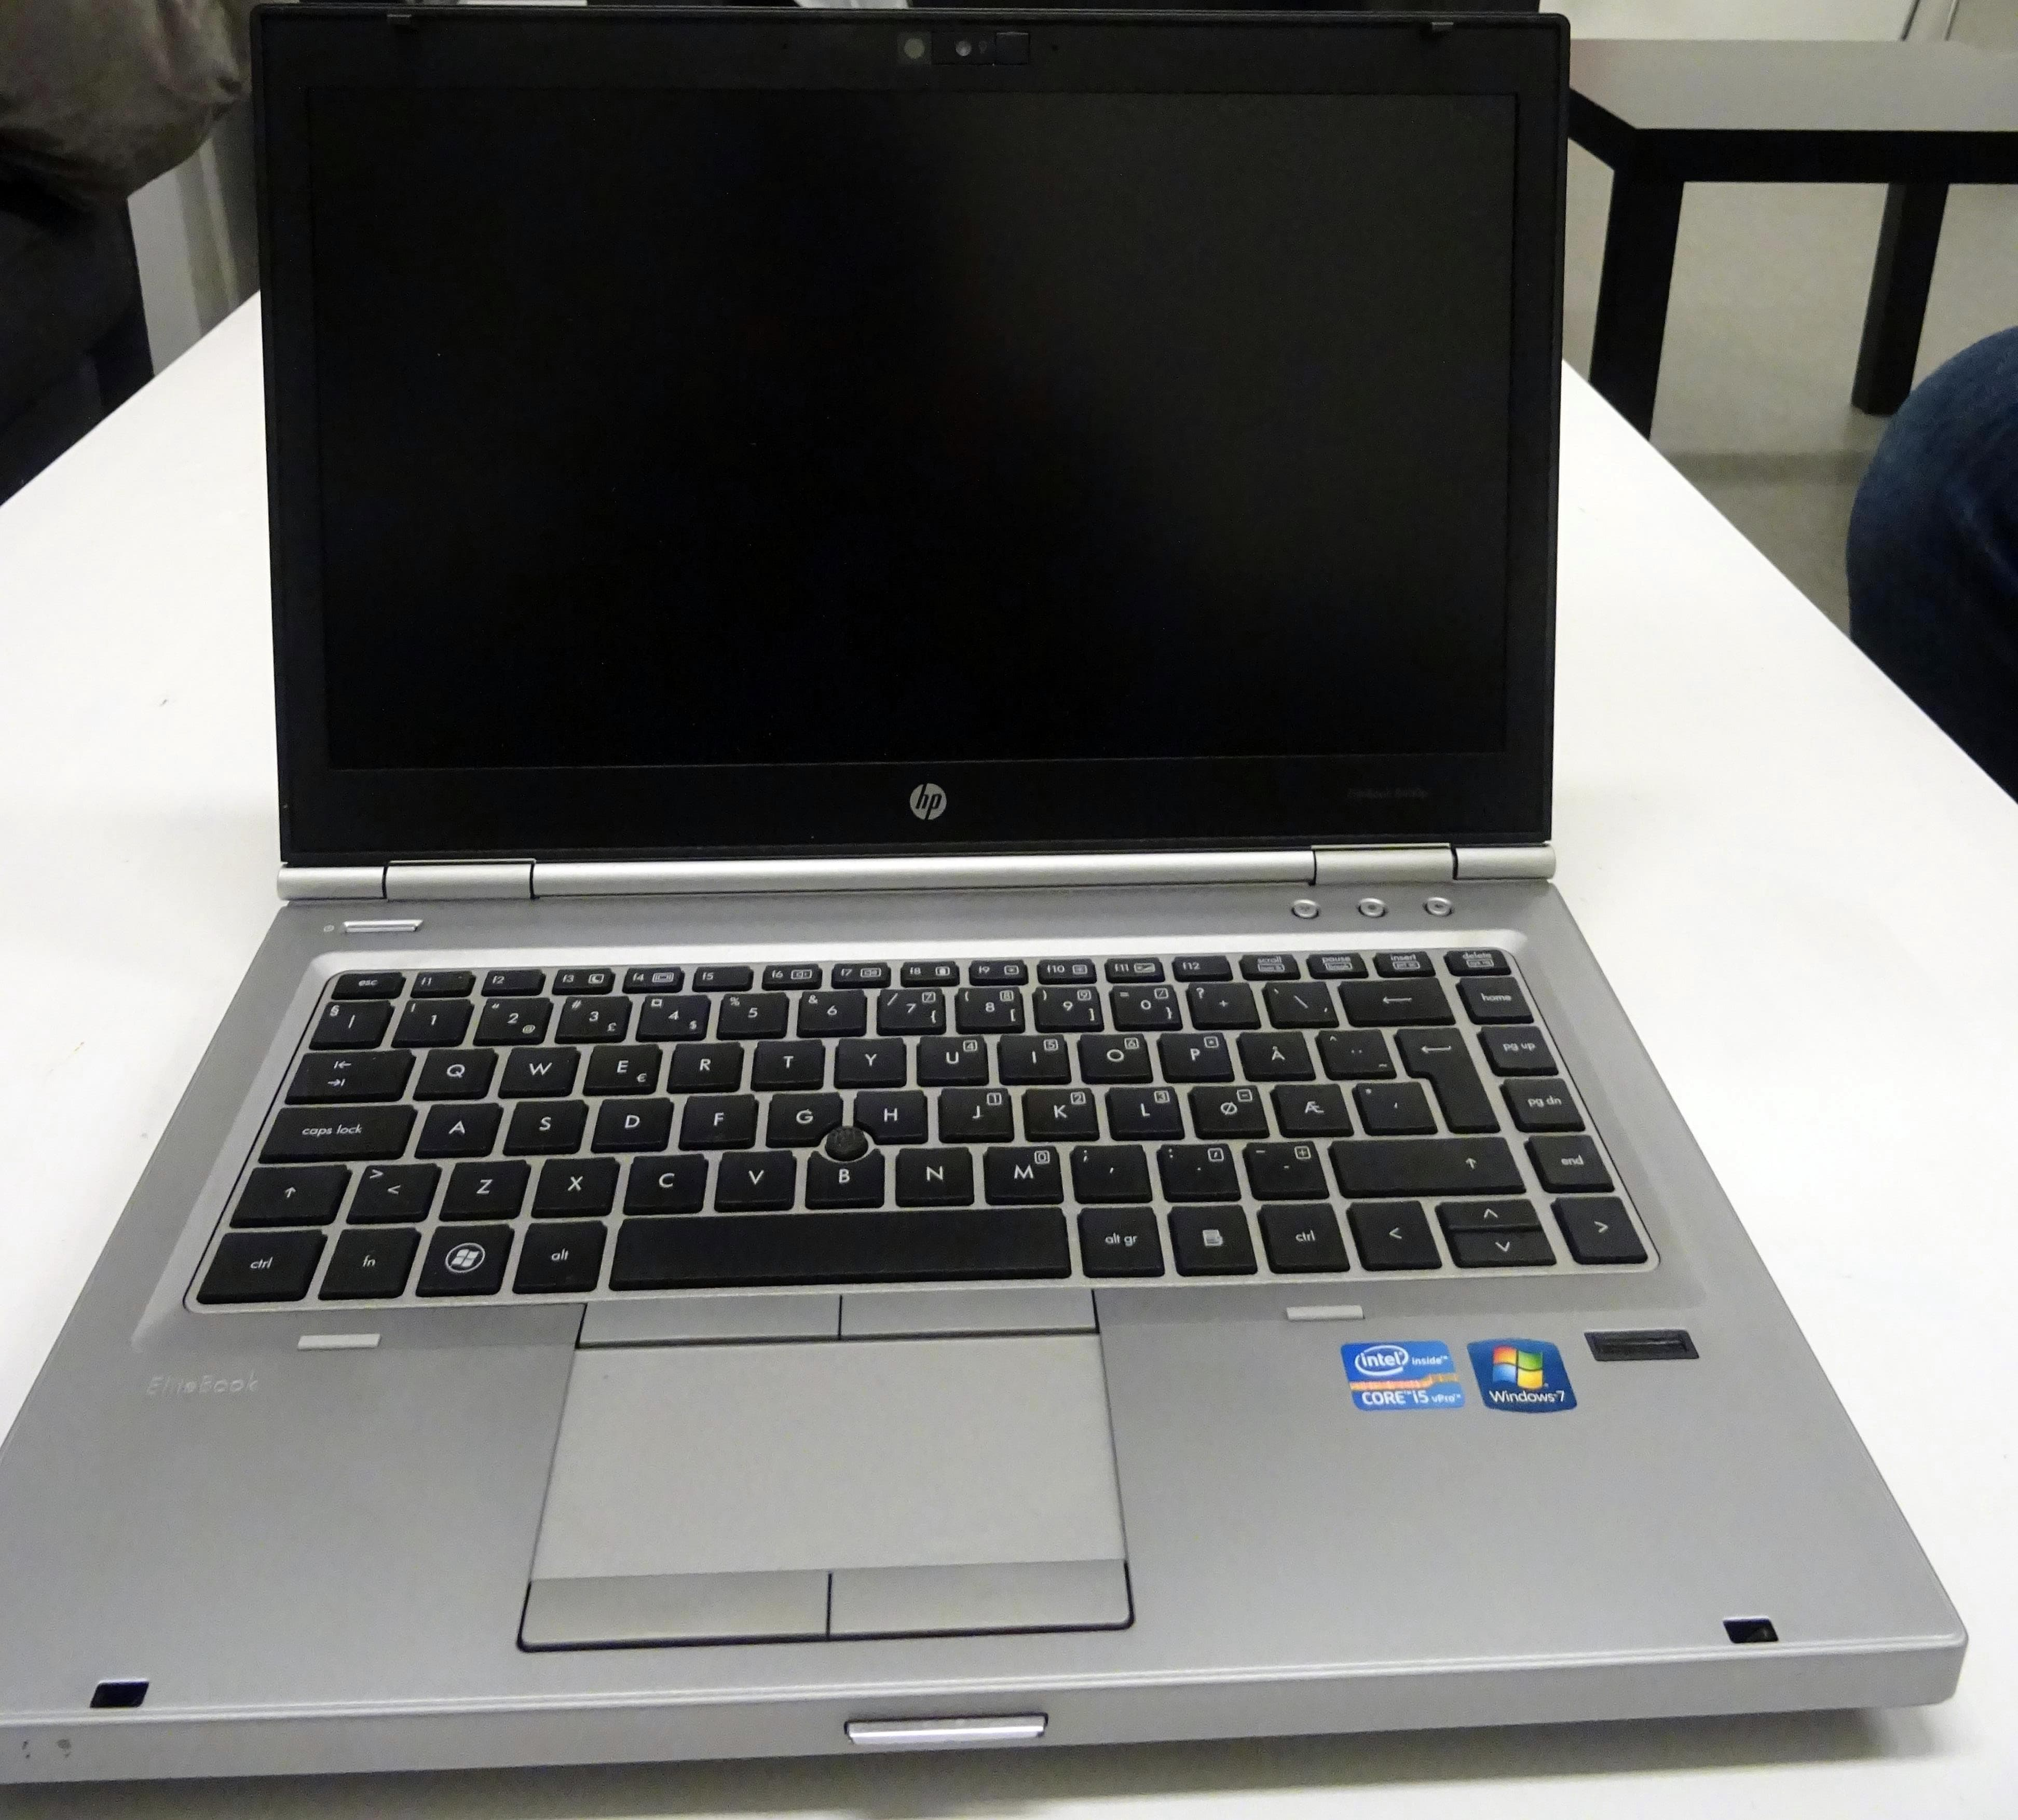 ELITEBOOK 8460P WINDOWS XP DRIVER